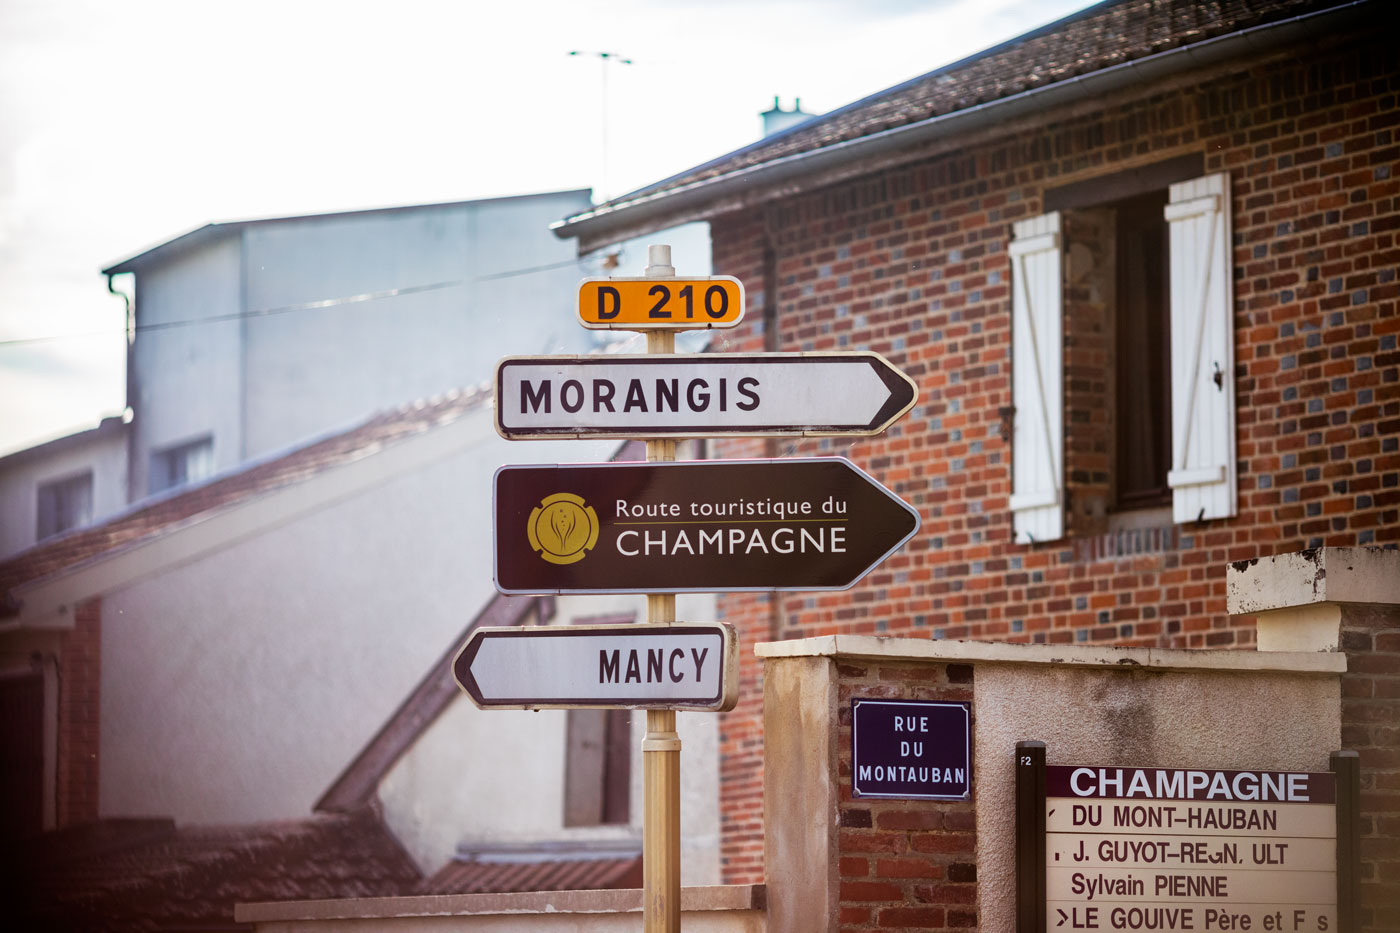 Signs for touriste route in the french Champagne region